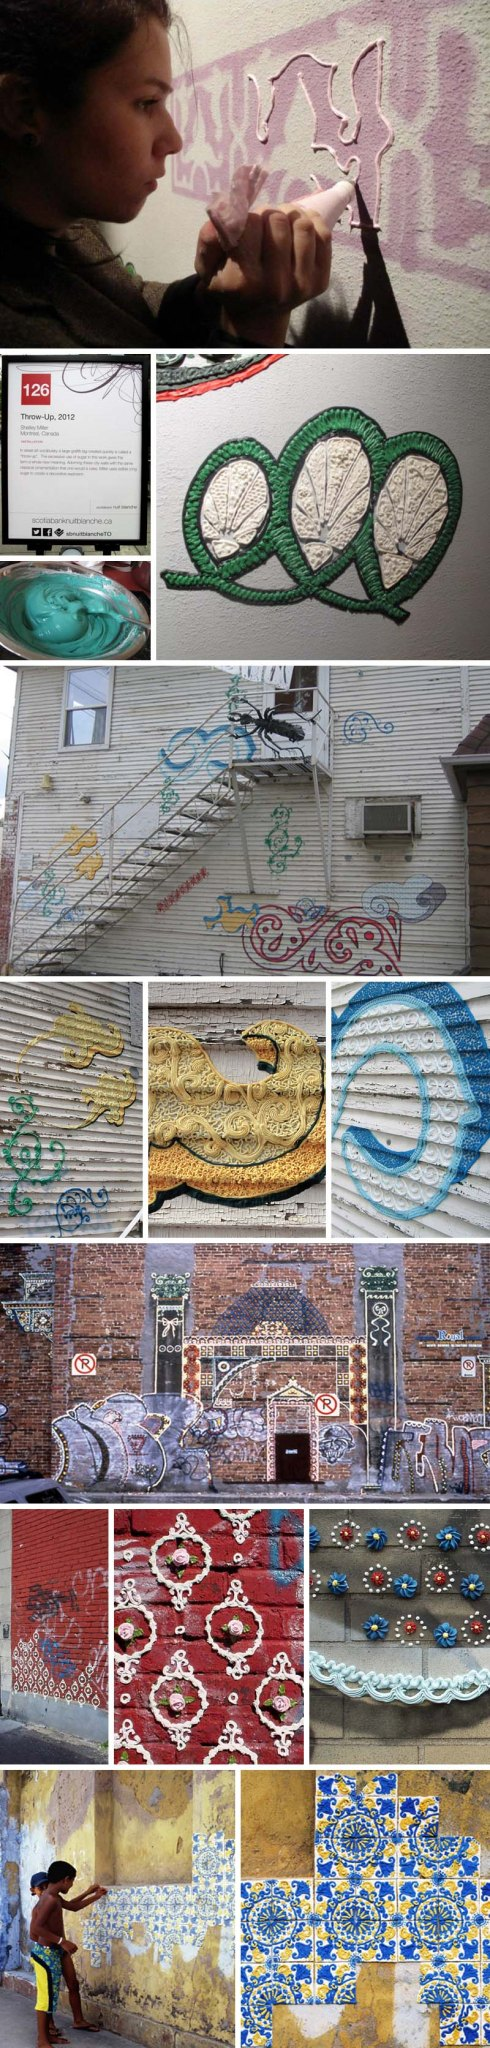 Artist Who Throws Cake : Shelley Miller: Cake Icing Graffiti